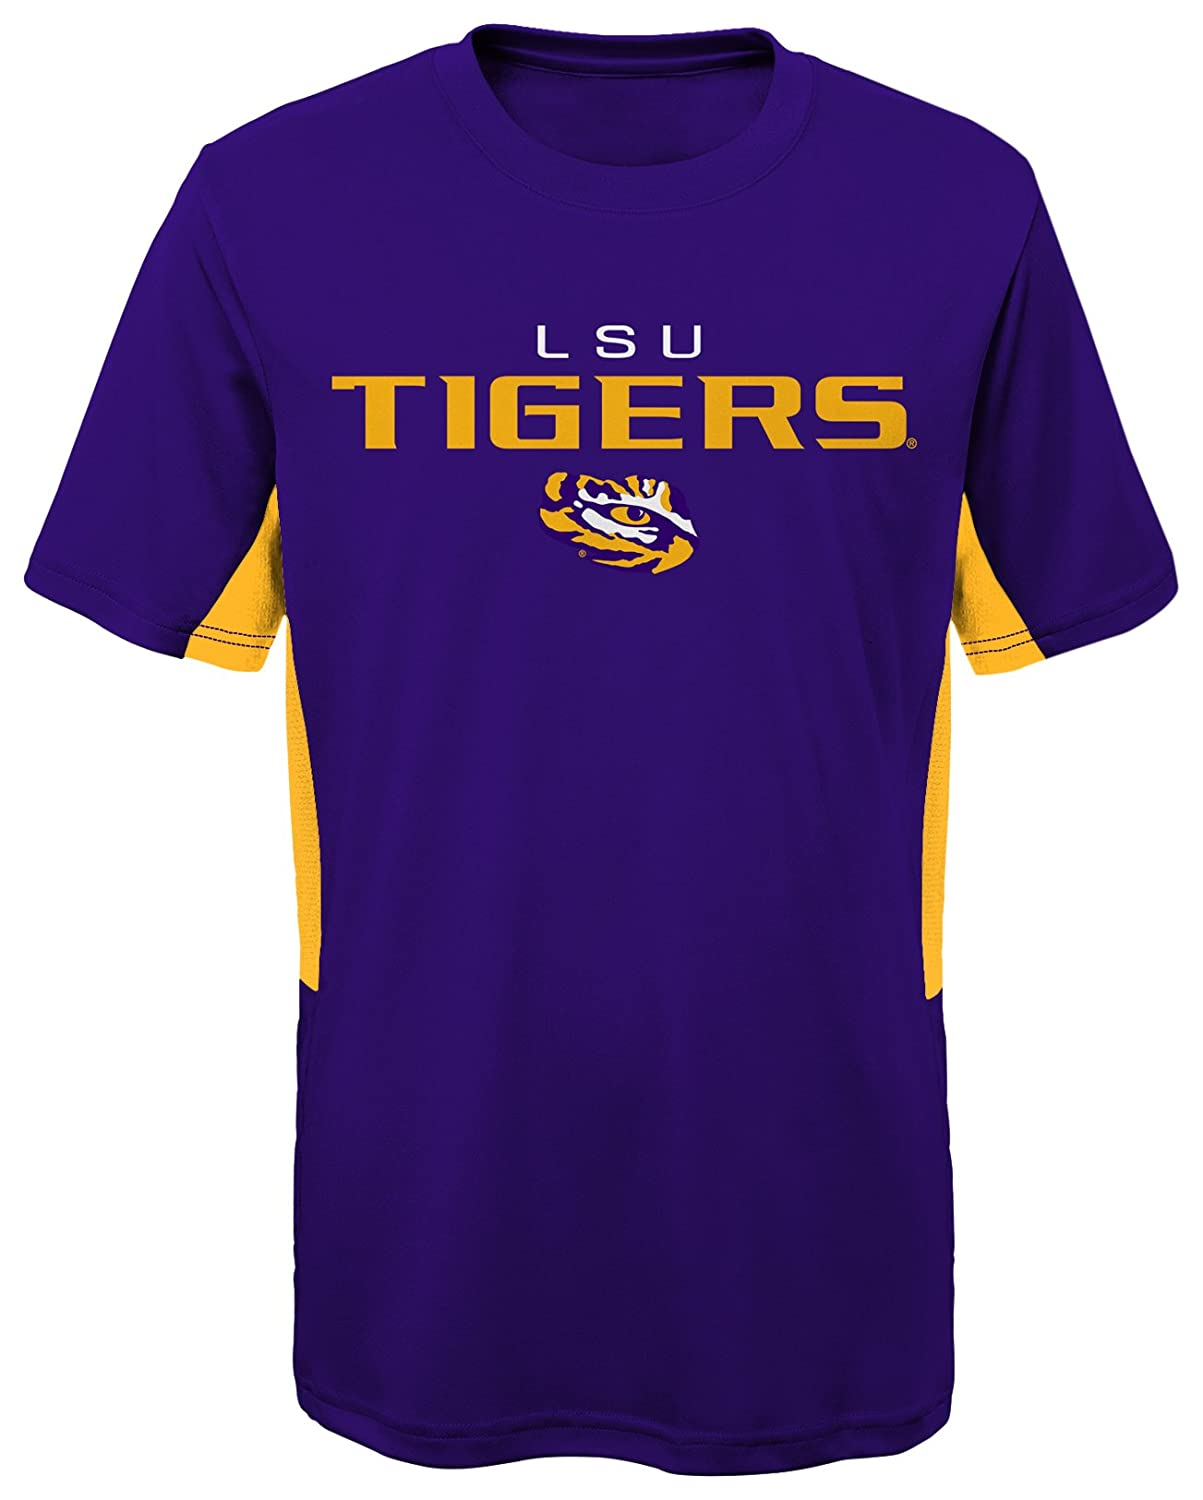 18 Youth X-Large Regal Purple NCAA by Outerstuff NCAA Lsu Tigers Youth Boys Mainframe: Short Sleeve Performance Top